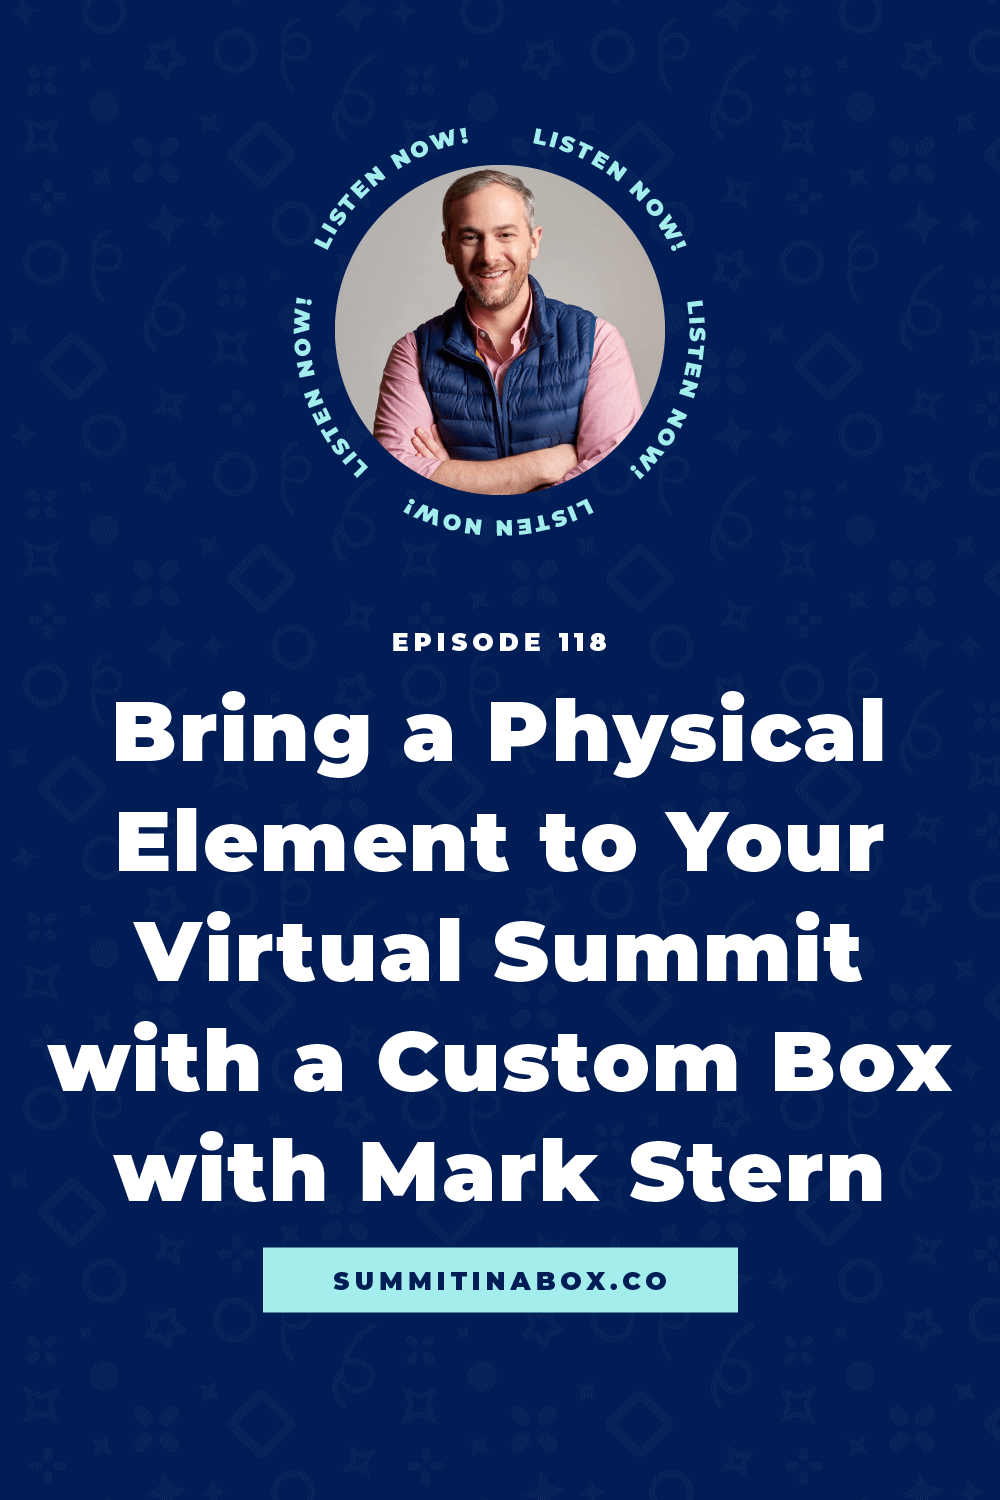 Custom boxes are a powerful way to create an incredible experience and increase engagement for your virtual summit attendees by combining physical with digital.